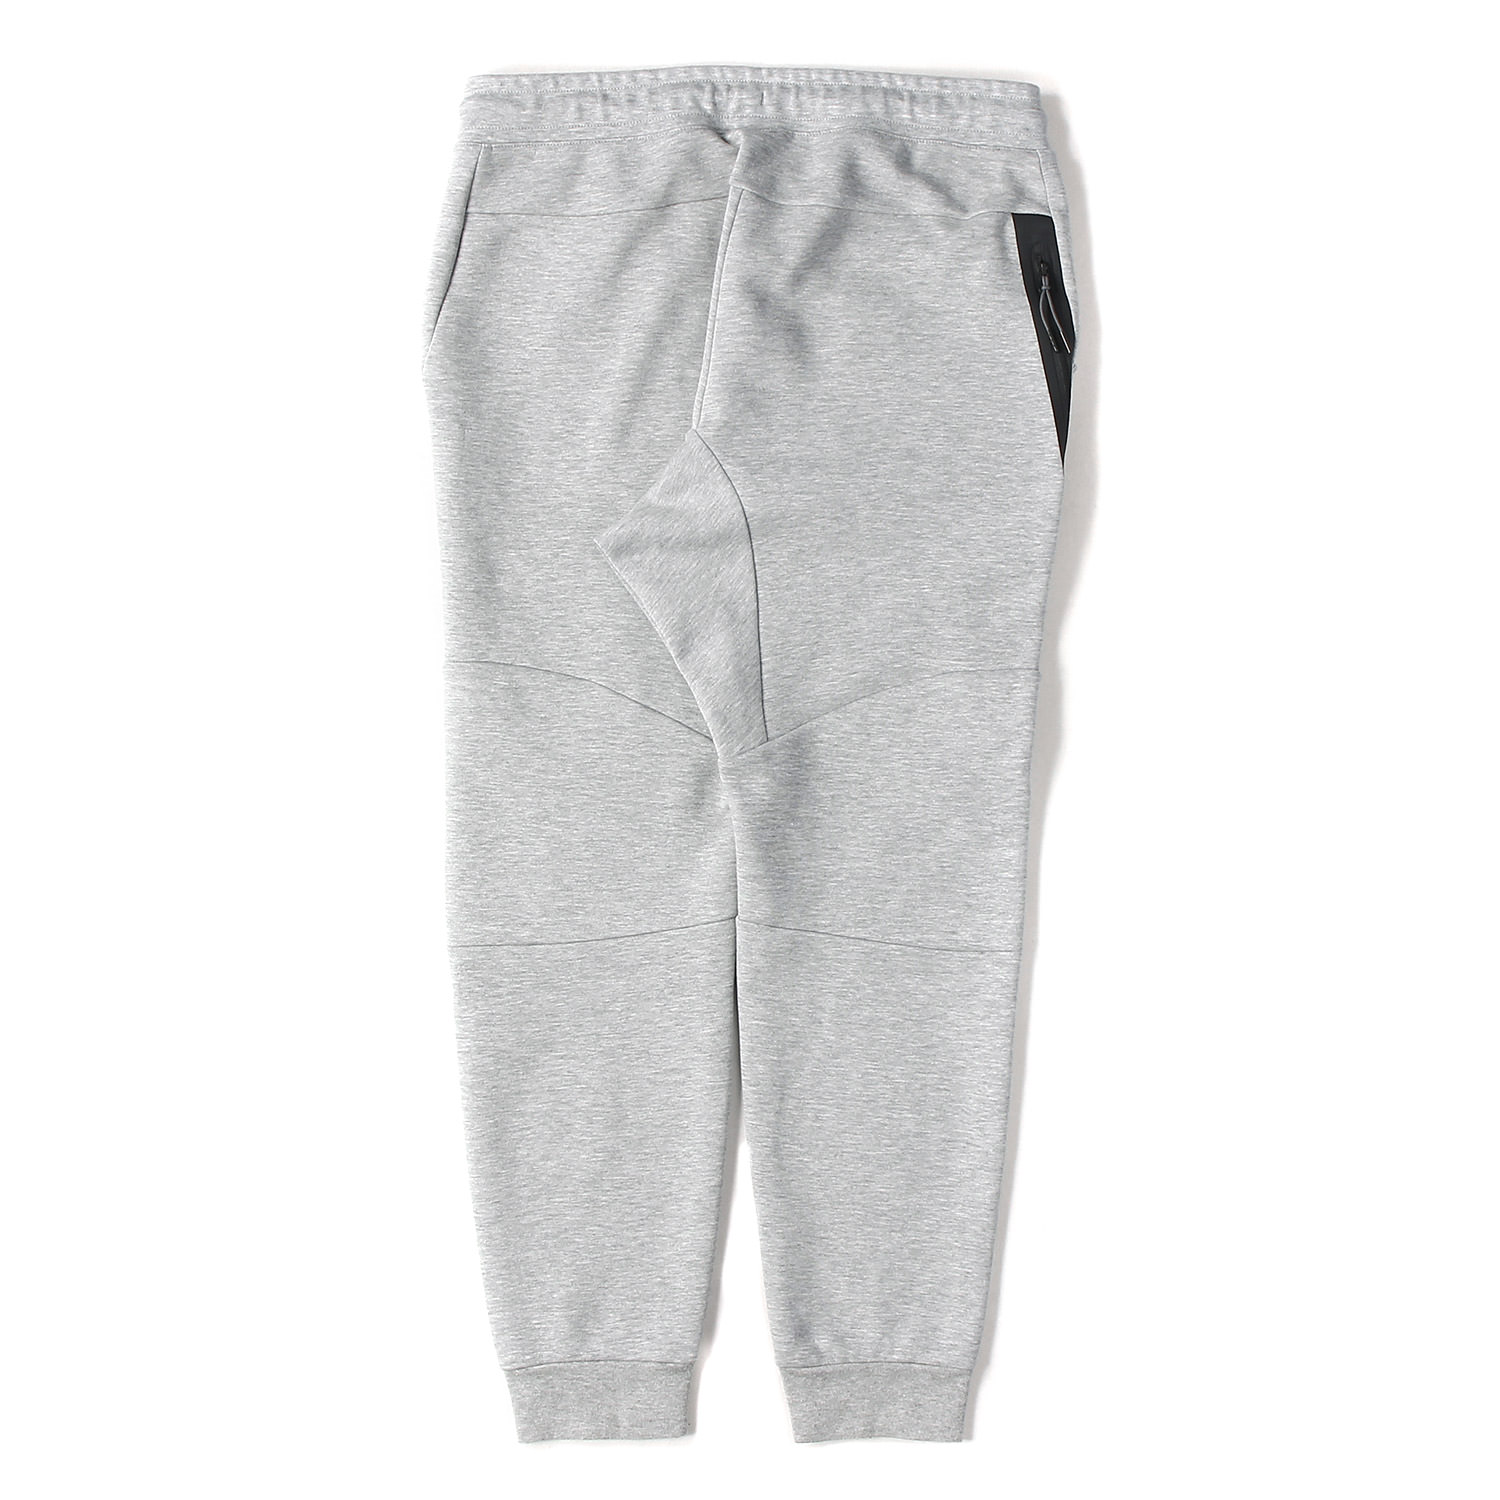 American Hawk Boys Fleece Jogger Pant